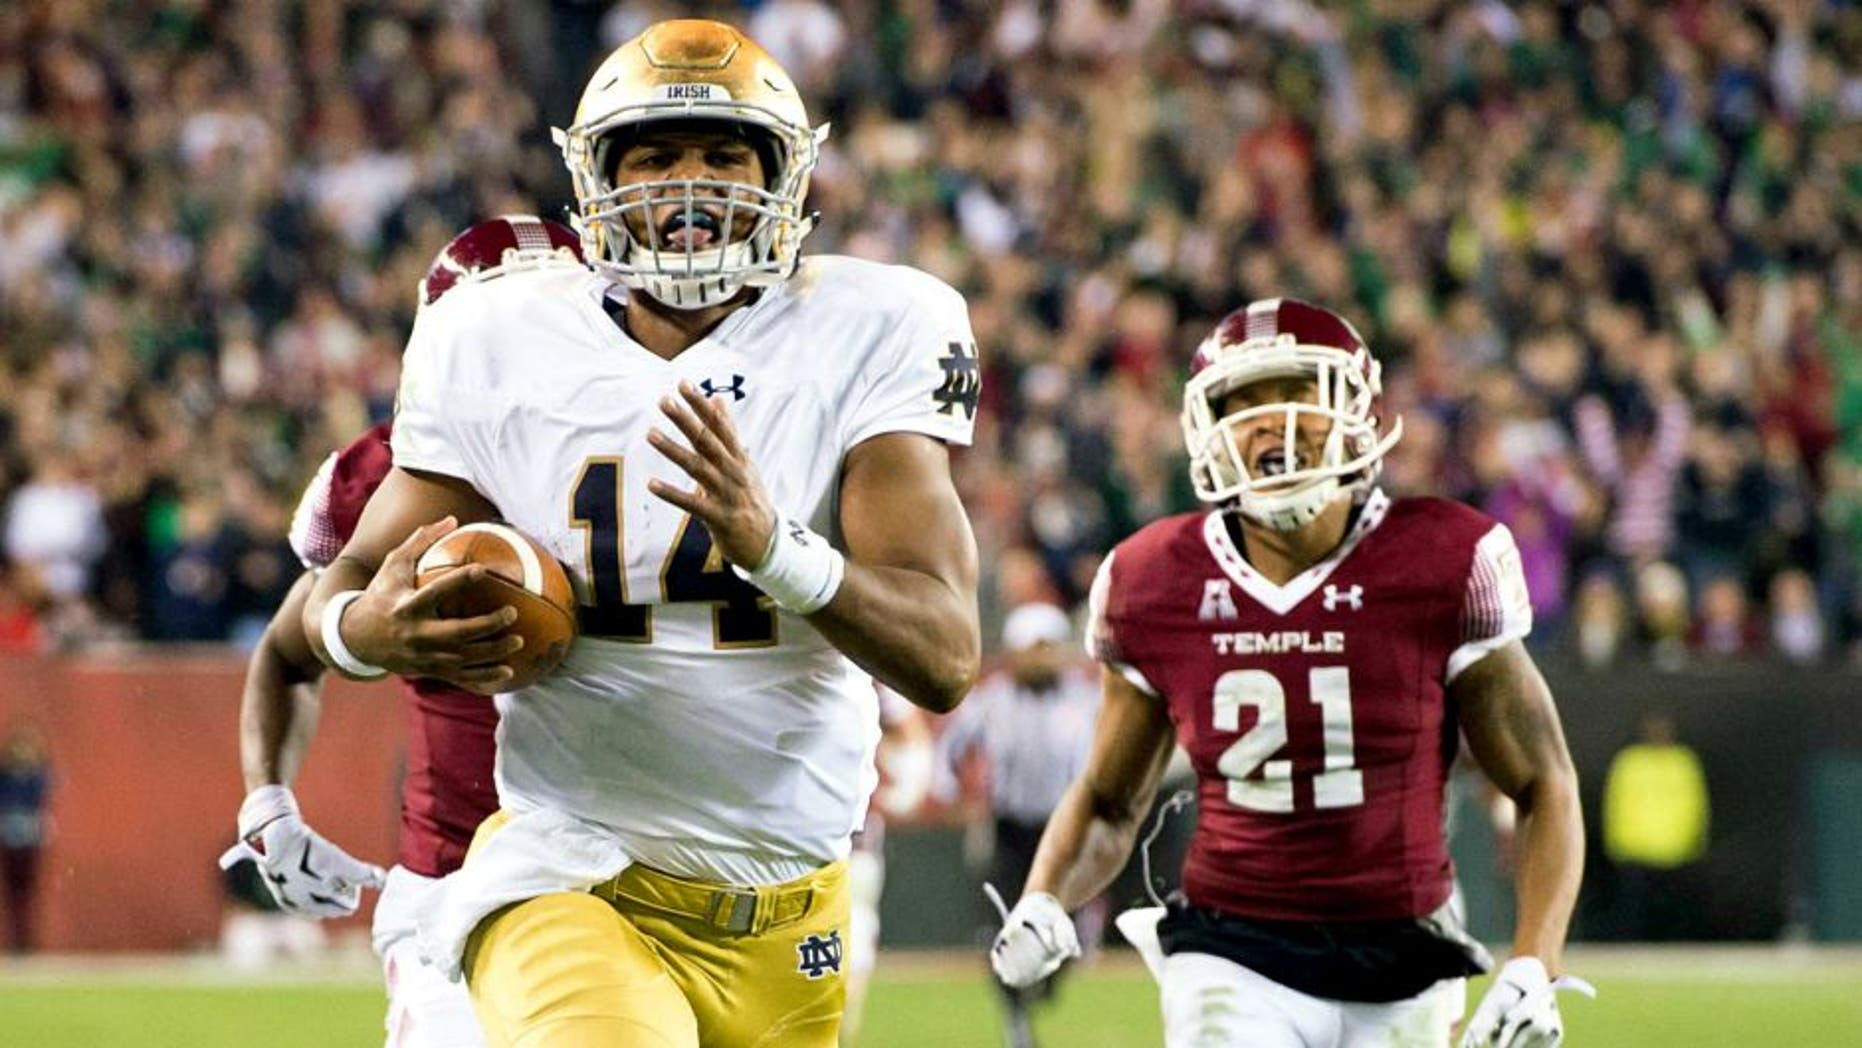 Oct 31, 2015; Philadelphia, PA, USA; Notre Dame Fighting Irish quarterback DeShone Kizer (14) runs for a touchdown as Temple Owls safety Alex Wells (21) pursues in the second quarter at Lincoln Financial Field. Mandatory Credit: Matt Cashore-USA TODAY Sports